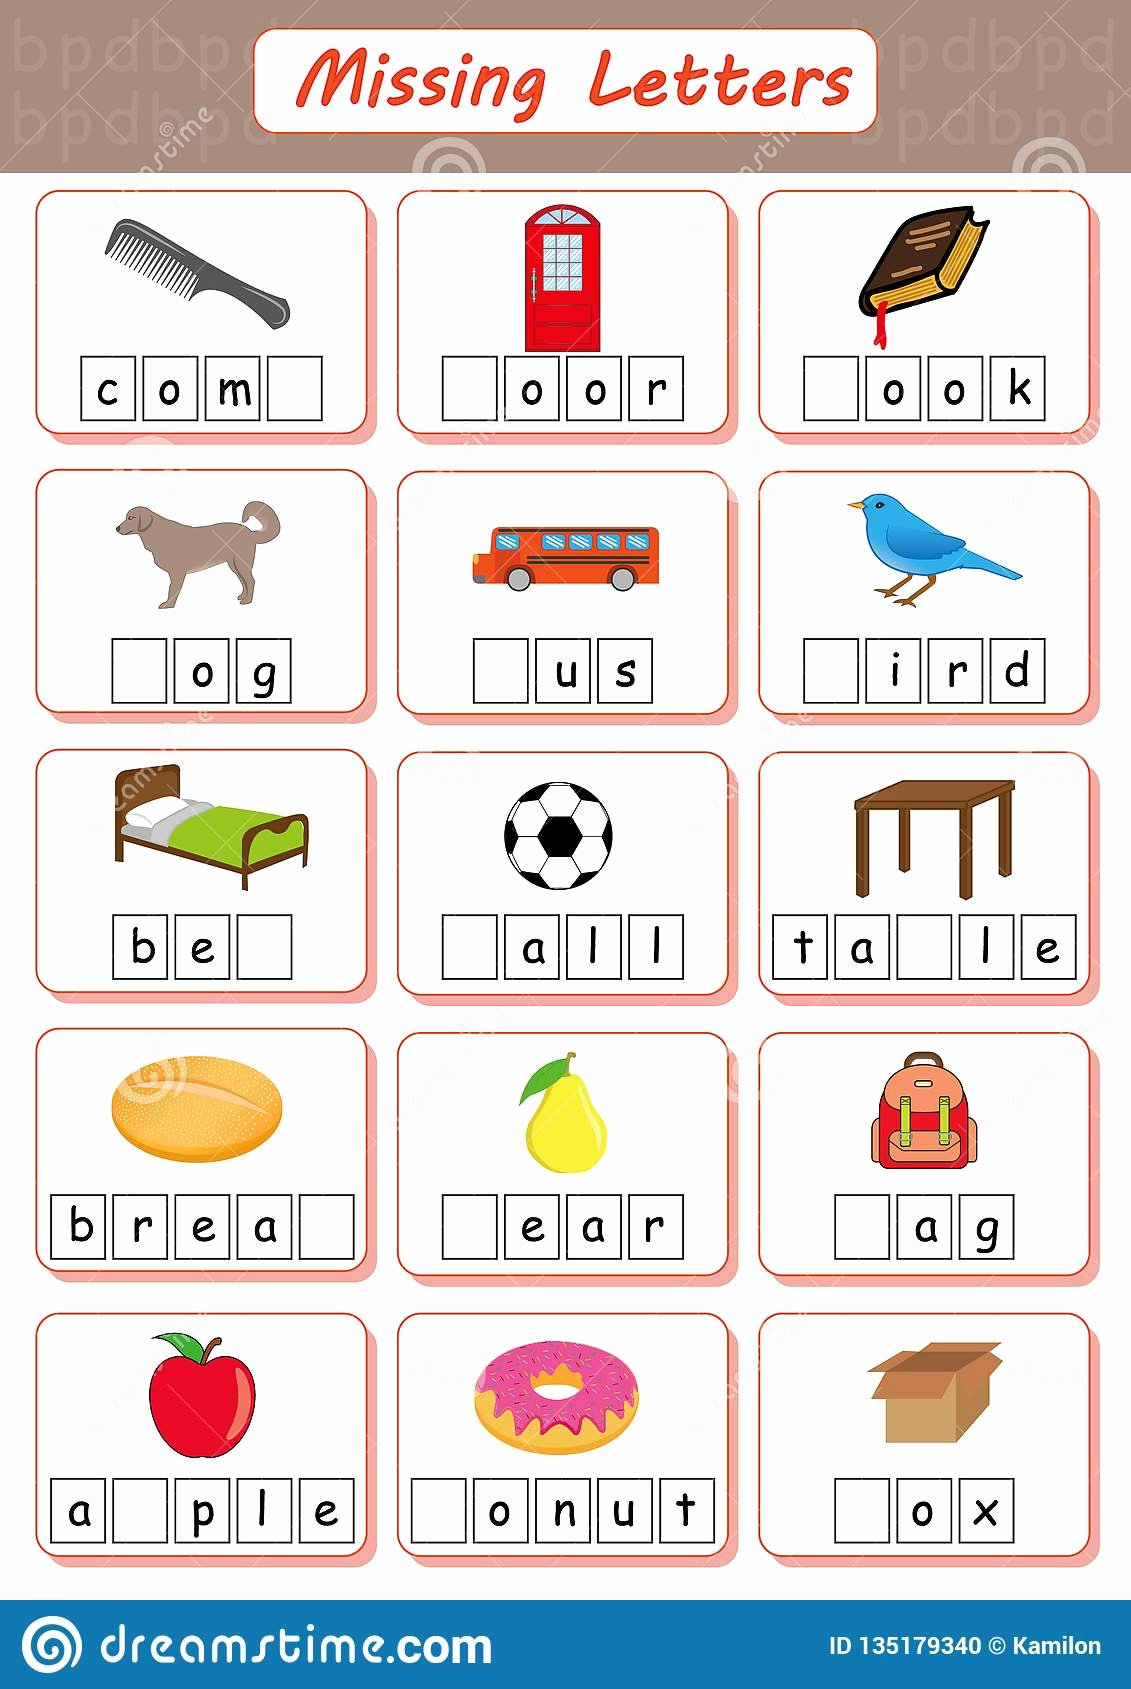 Missing Letters Worksheet for Kindergarten Best Of Missing Letters Find the and Write them In Dyslexia